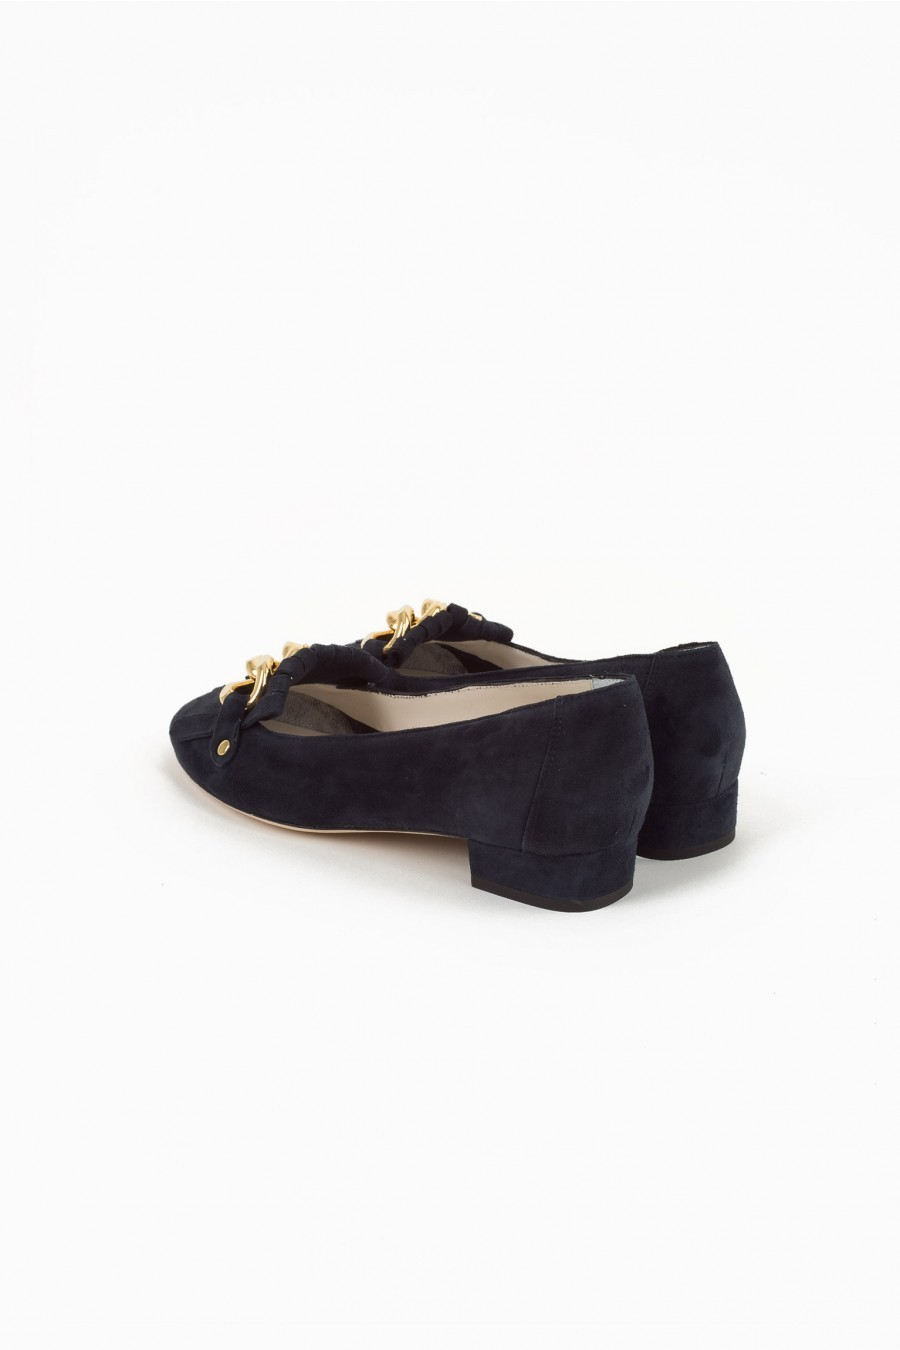 fringed flat shoes dark blue suede